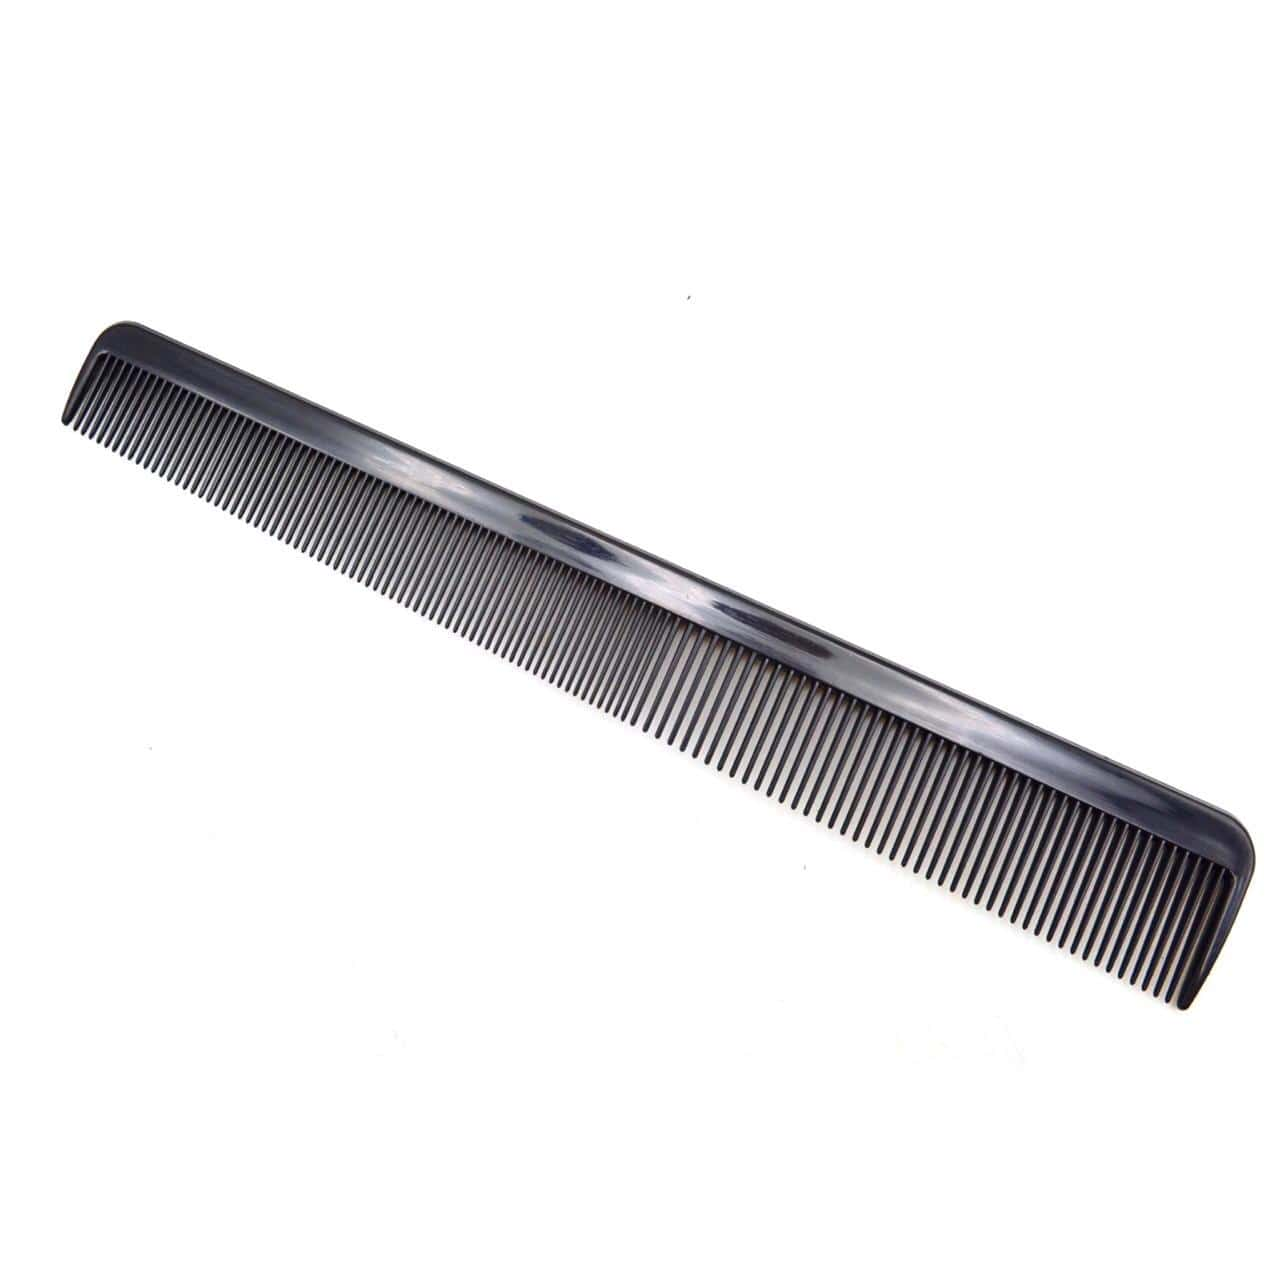 Globalstar Hair Styling Comb ABS-71639